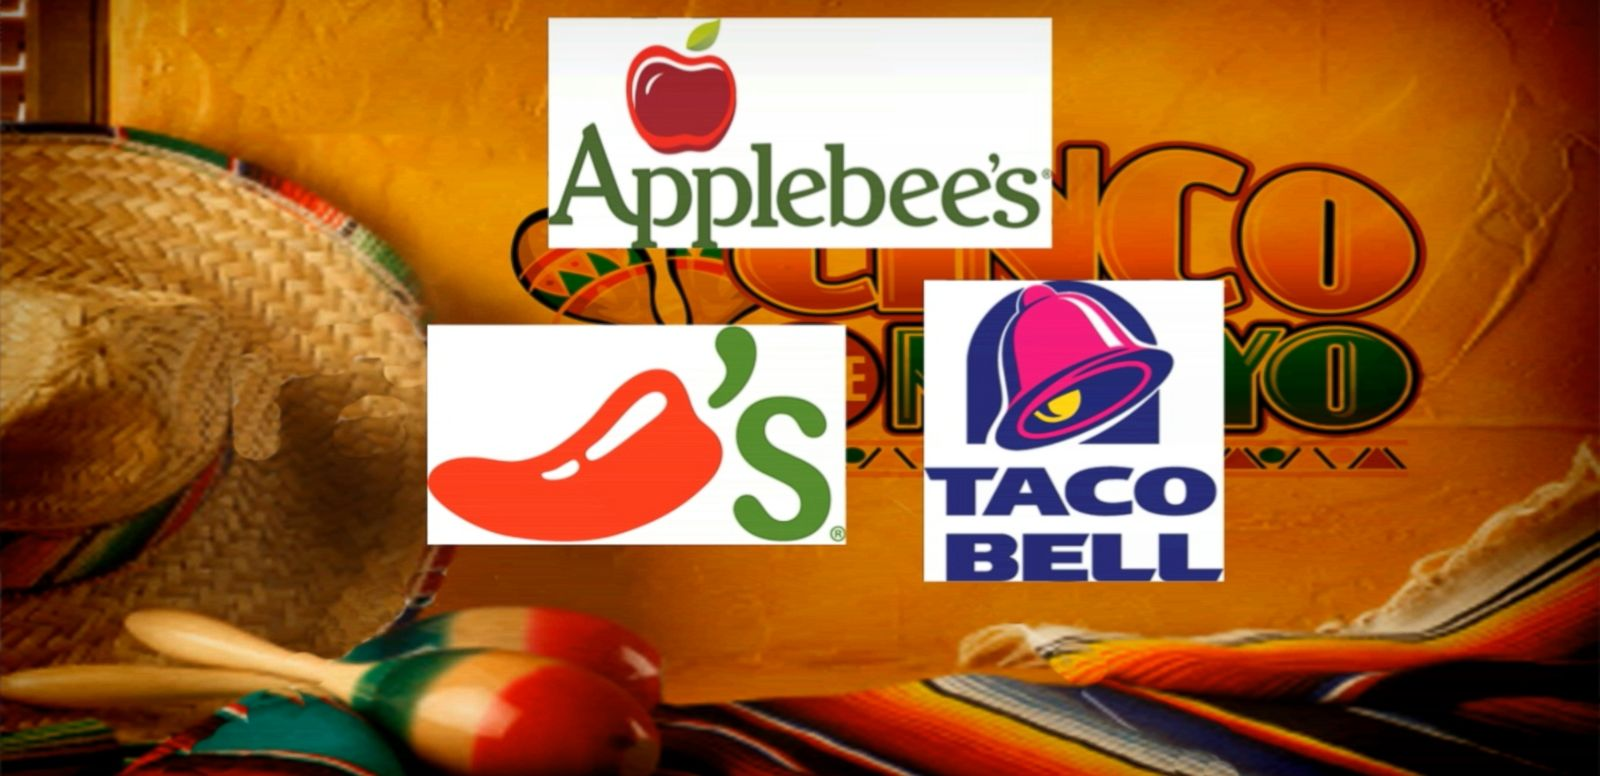 VIDEO: Applebee's and Chili's Grill and Bar are just some of the businesses capitalizing on the holiday.